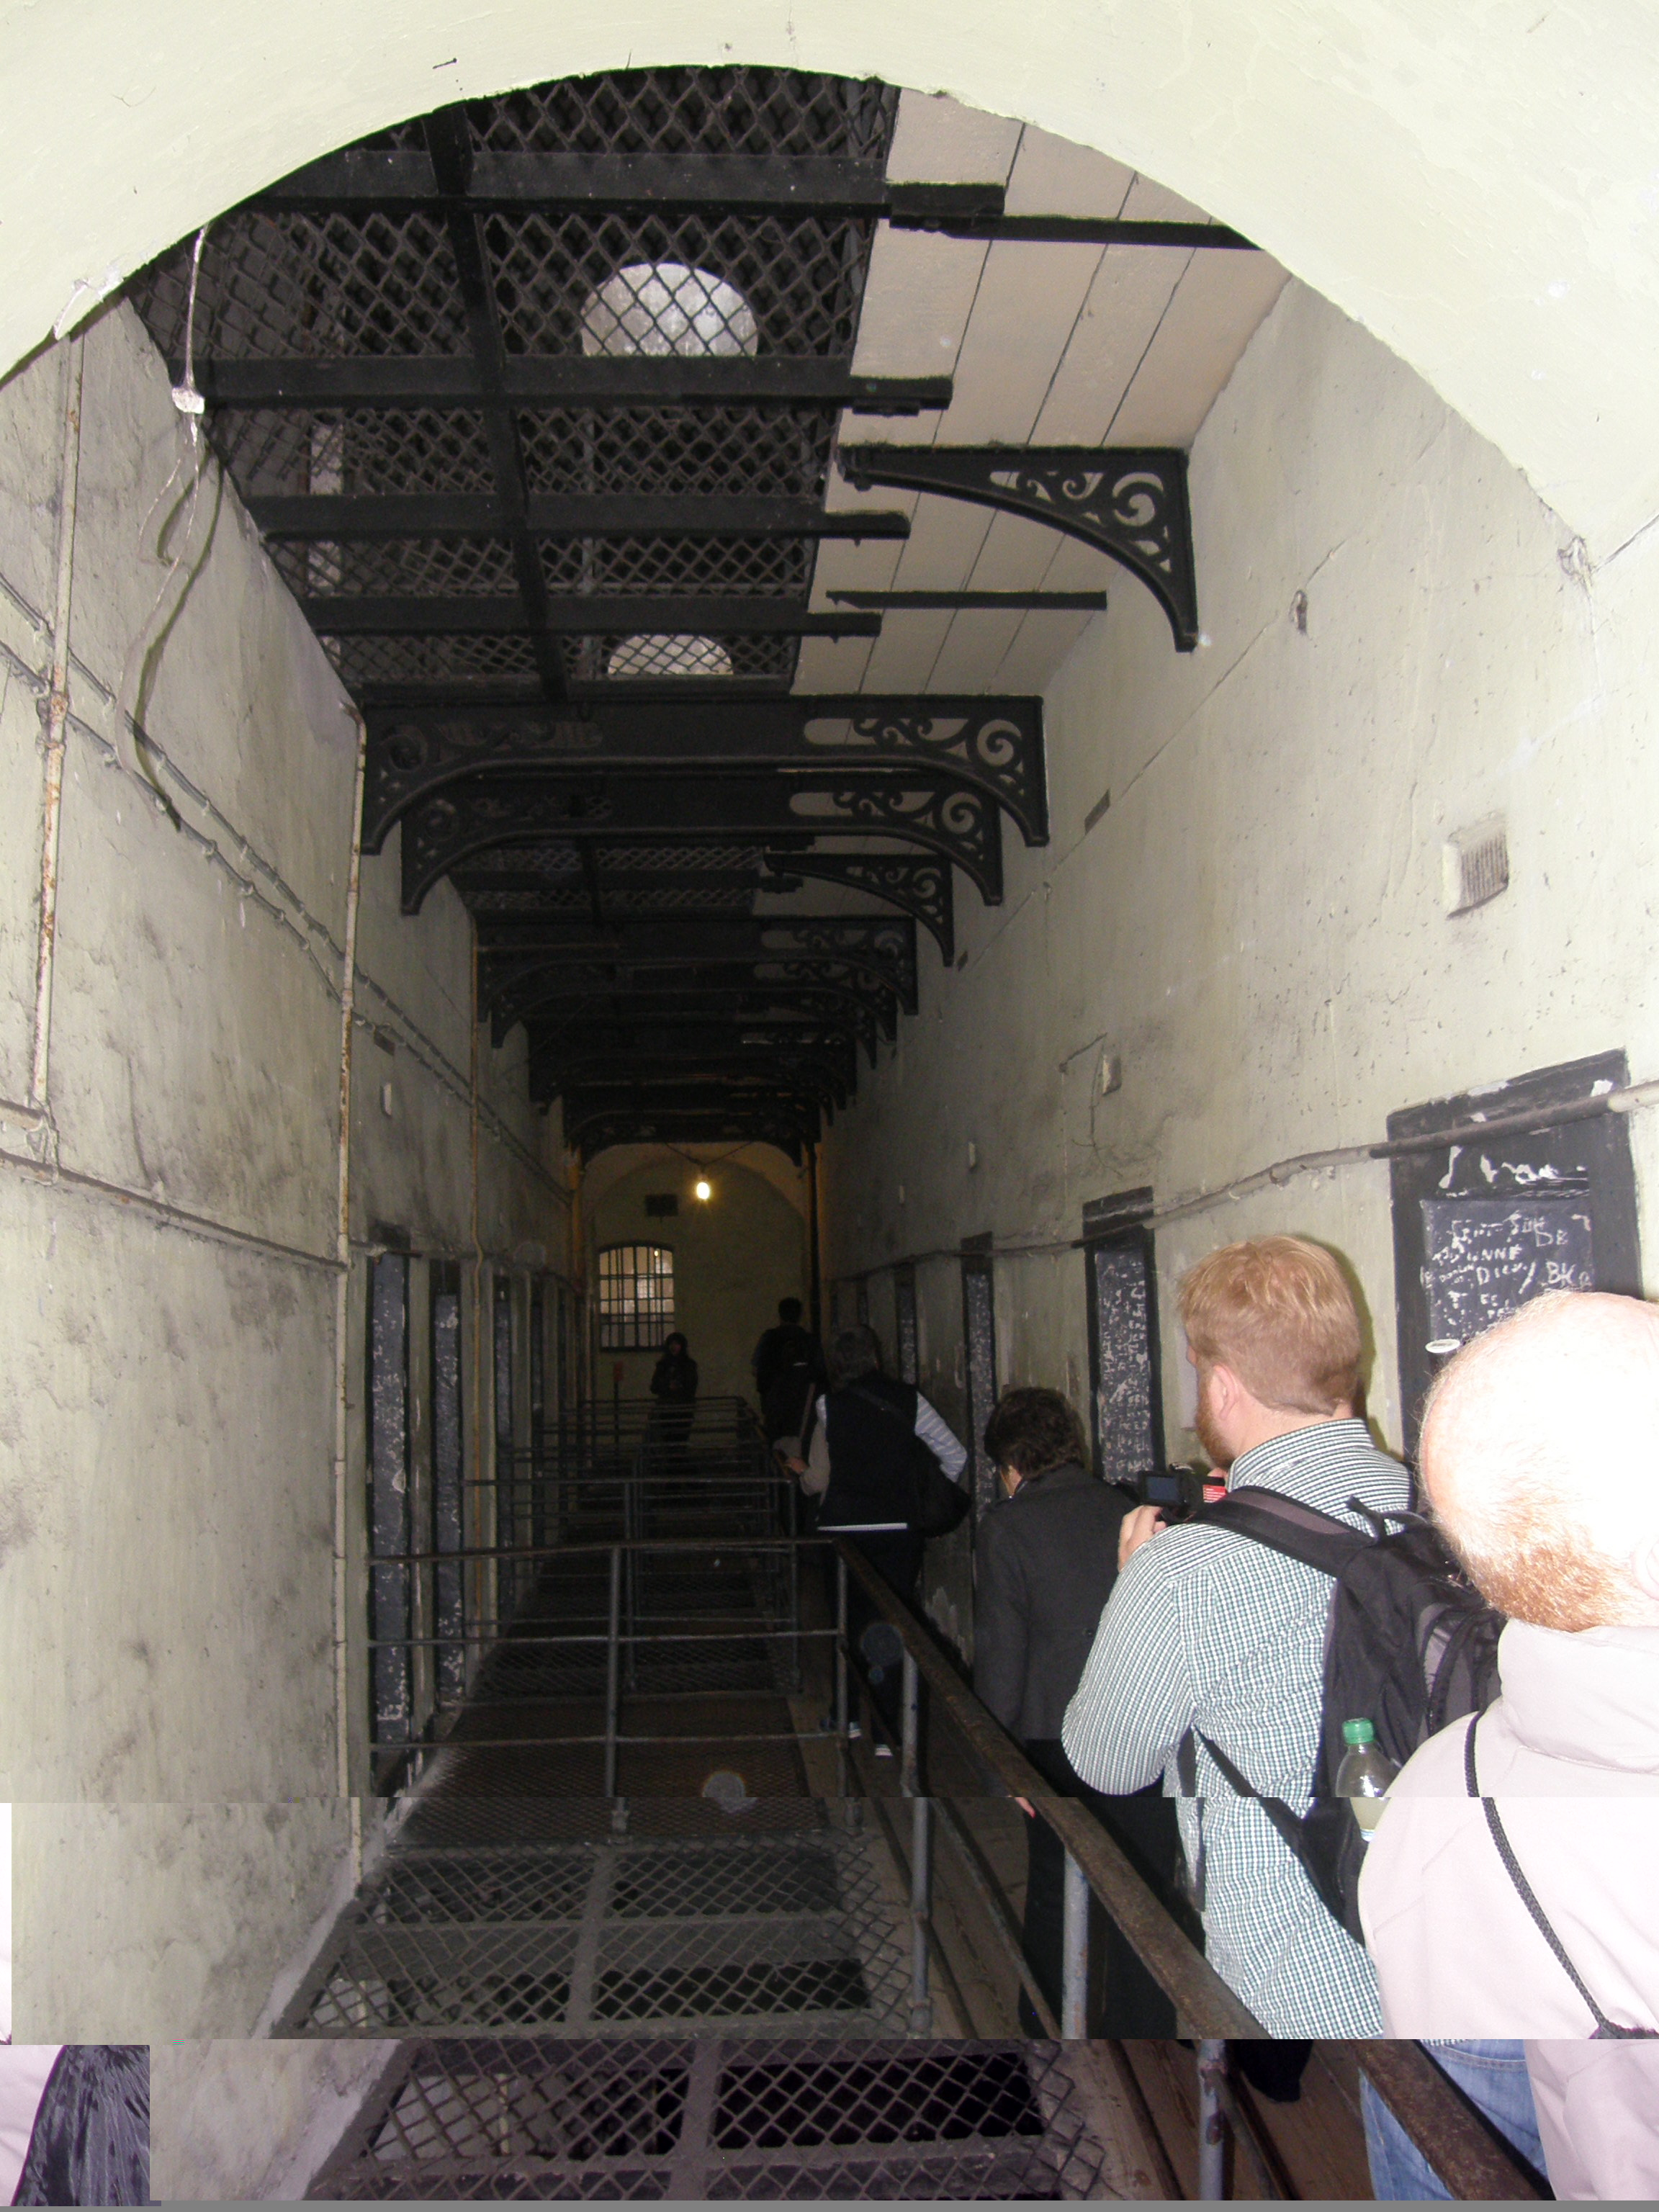 The 1916 Corridor - Cells Where the Volunteer Leaders Were Incarcerated